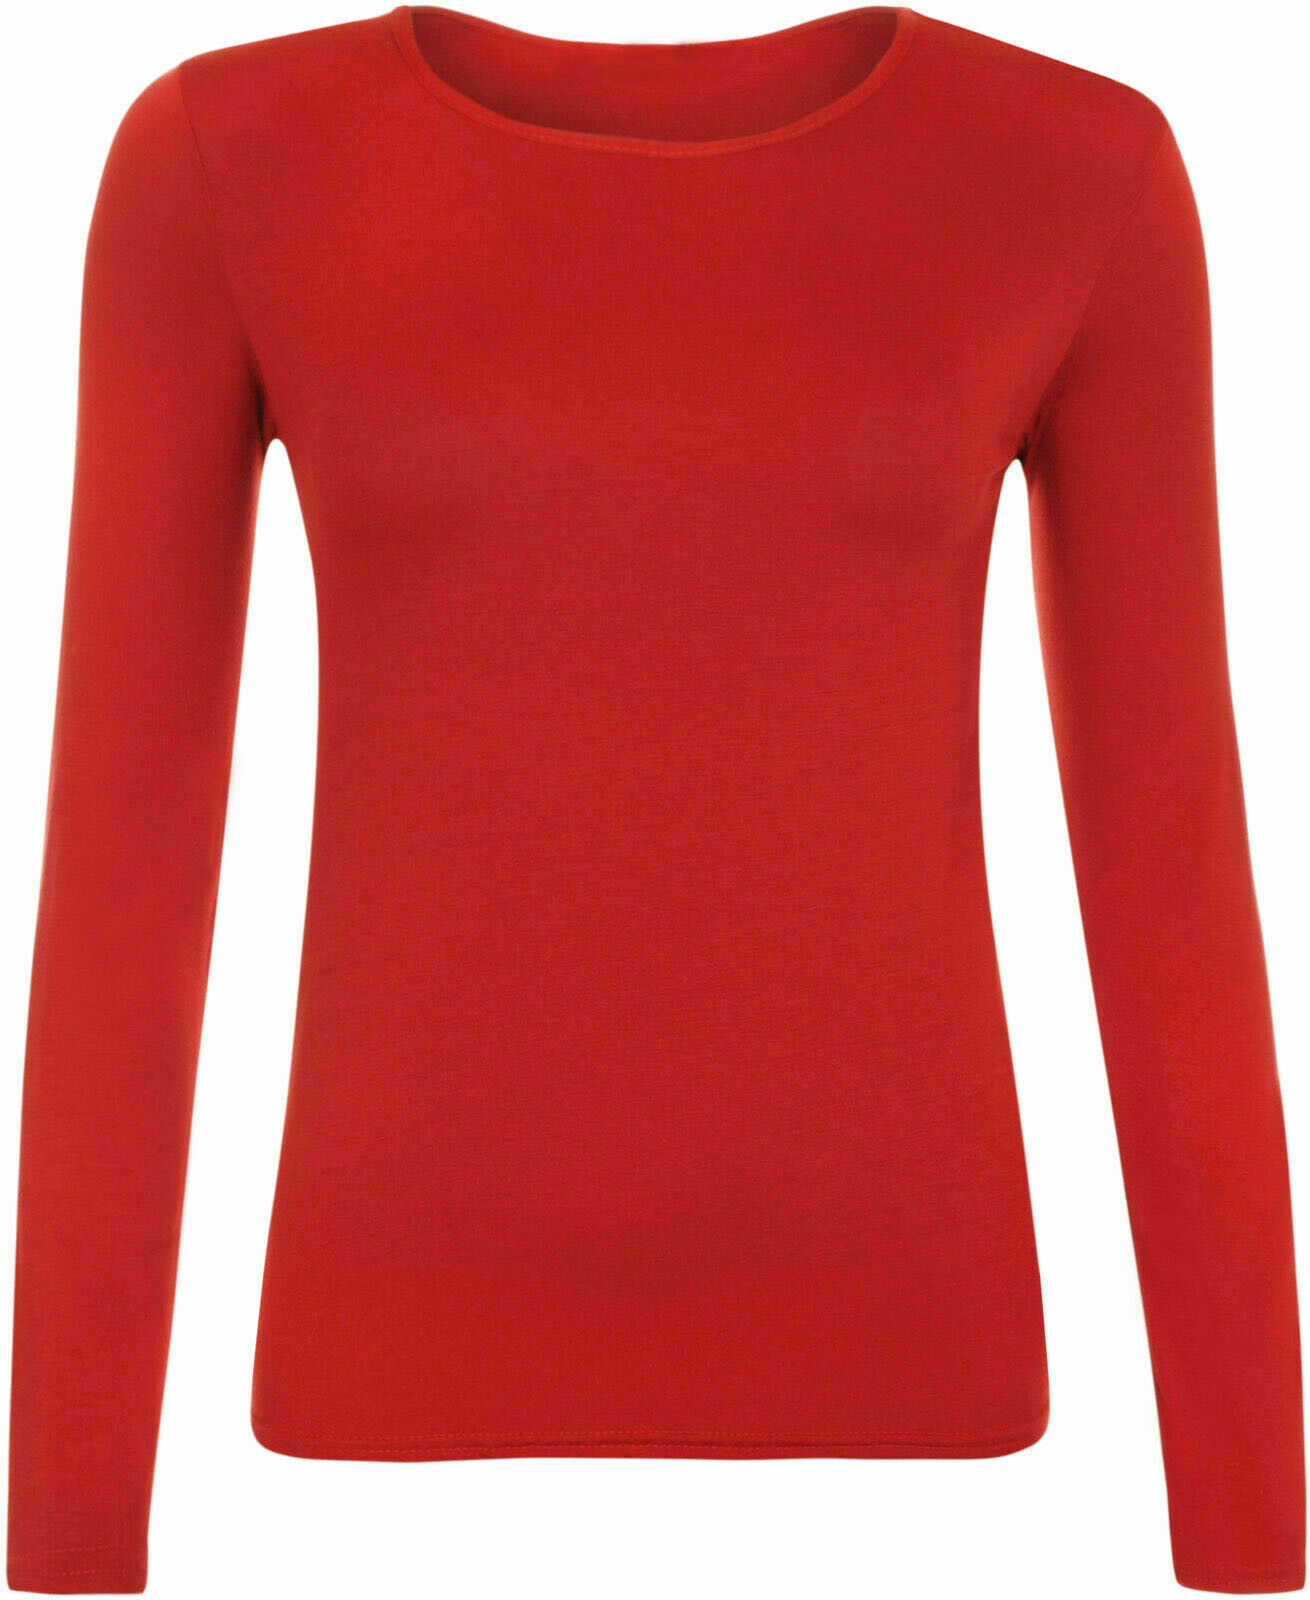 Ladies Plain Red Long Sleeve Round Neck Stretch T-Shirt